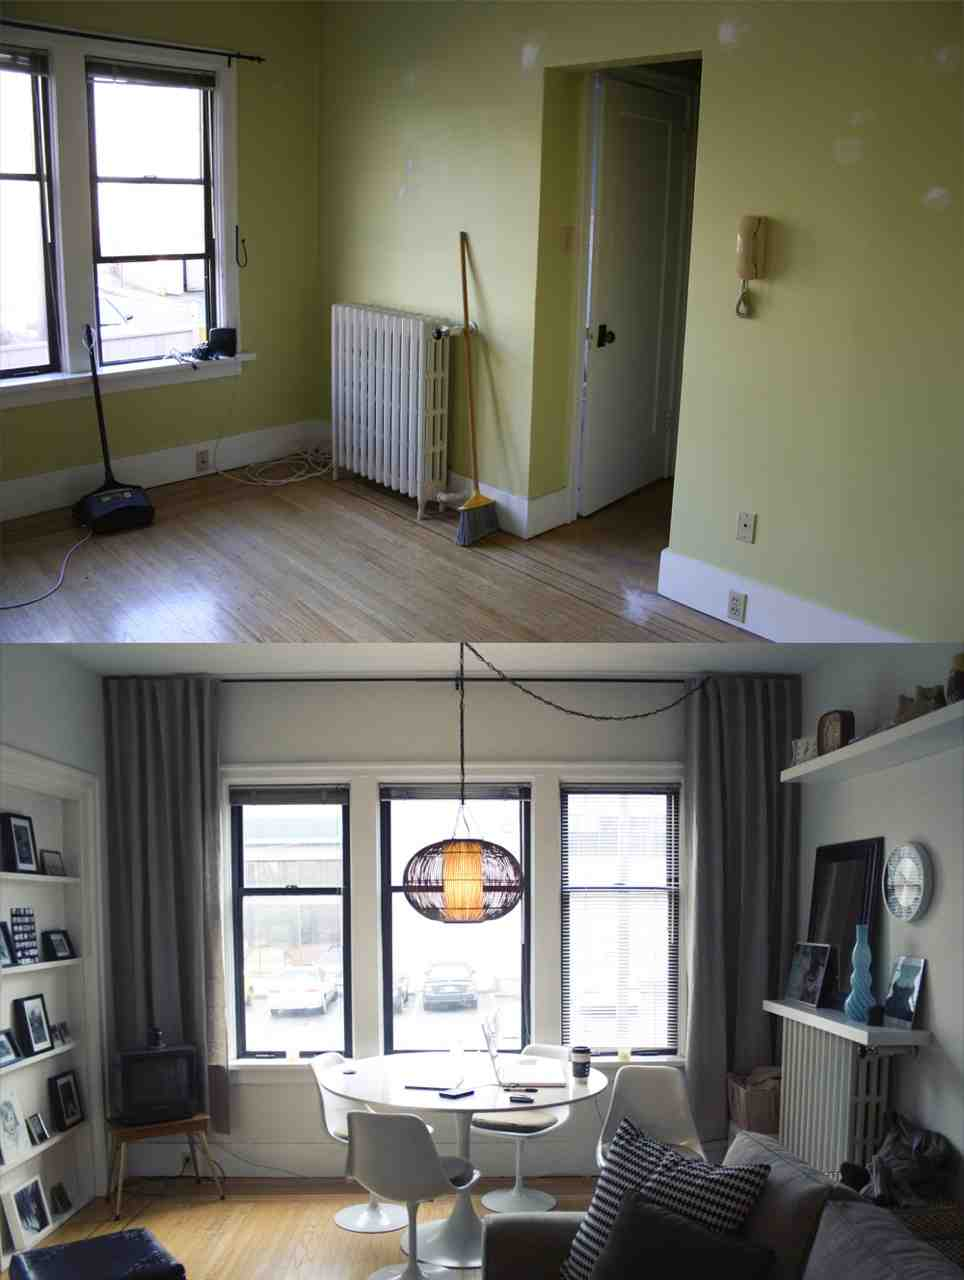 Small apartment decorating ideas on a budget decor for Apartment decorating